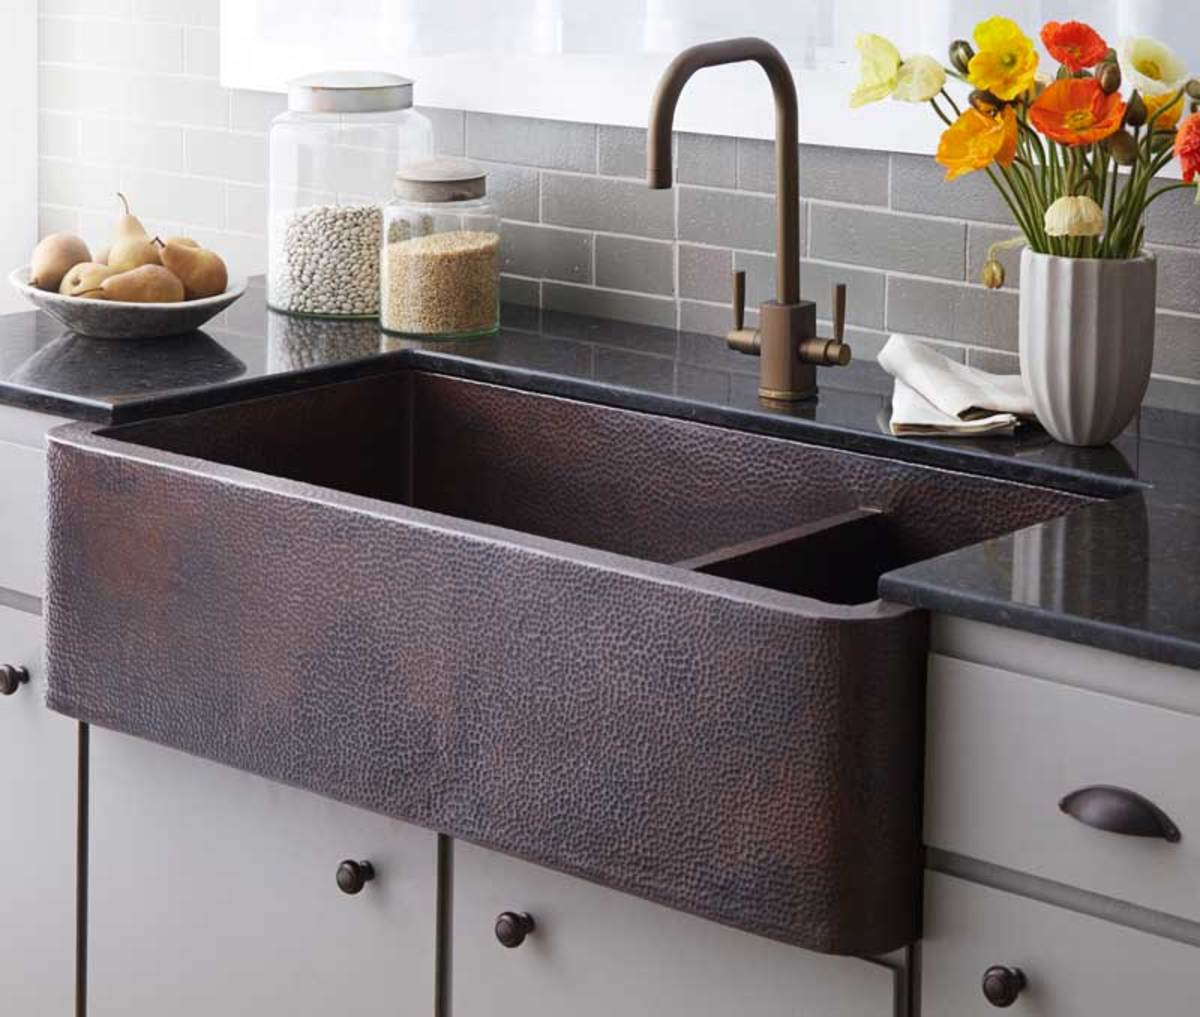 Native Trails launched its first line of copper sinks in 2003.